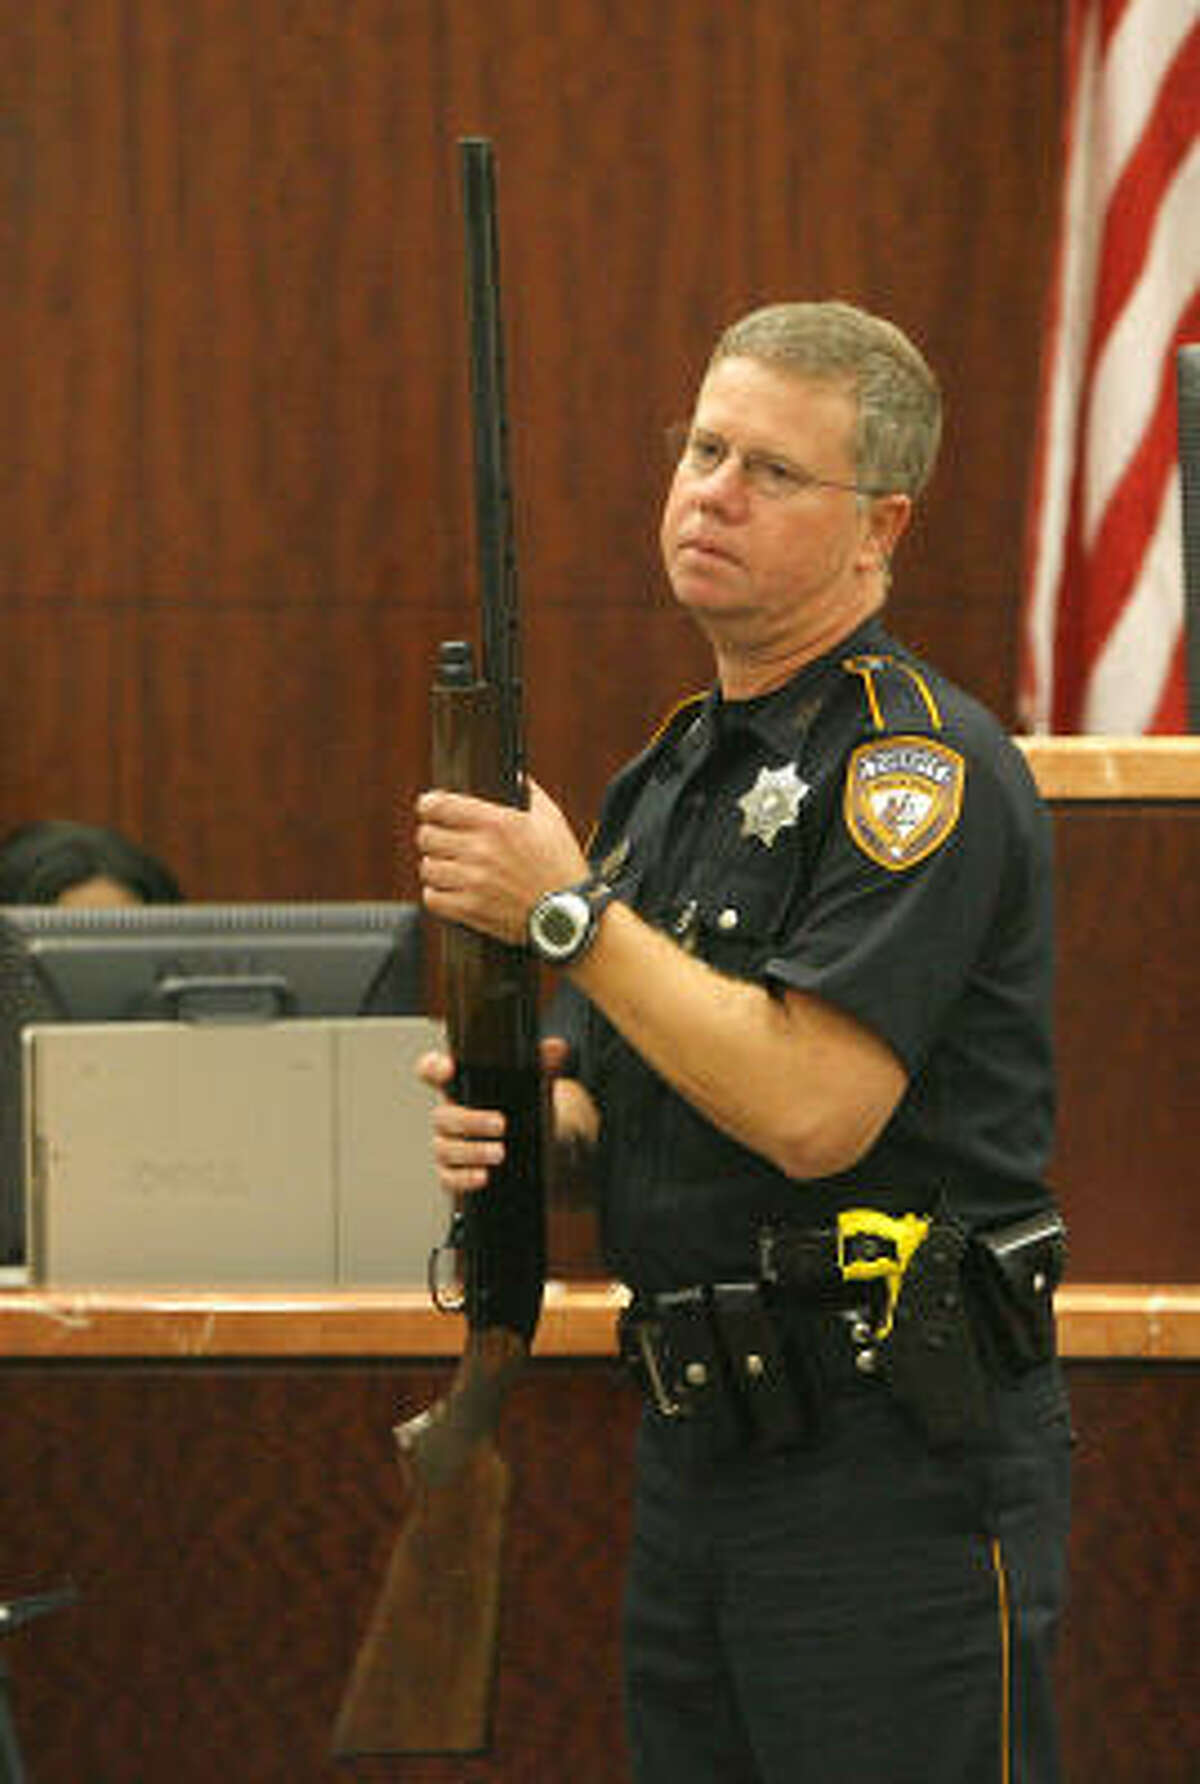 Bailiff H.T. Gilley takes charge of the shotgun that was used as evidence, Nov. 7.